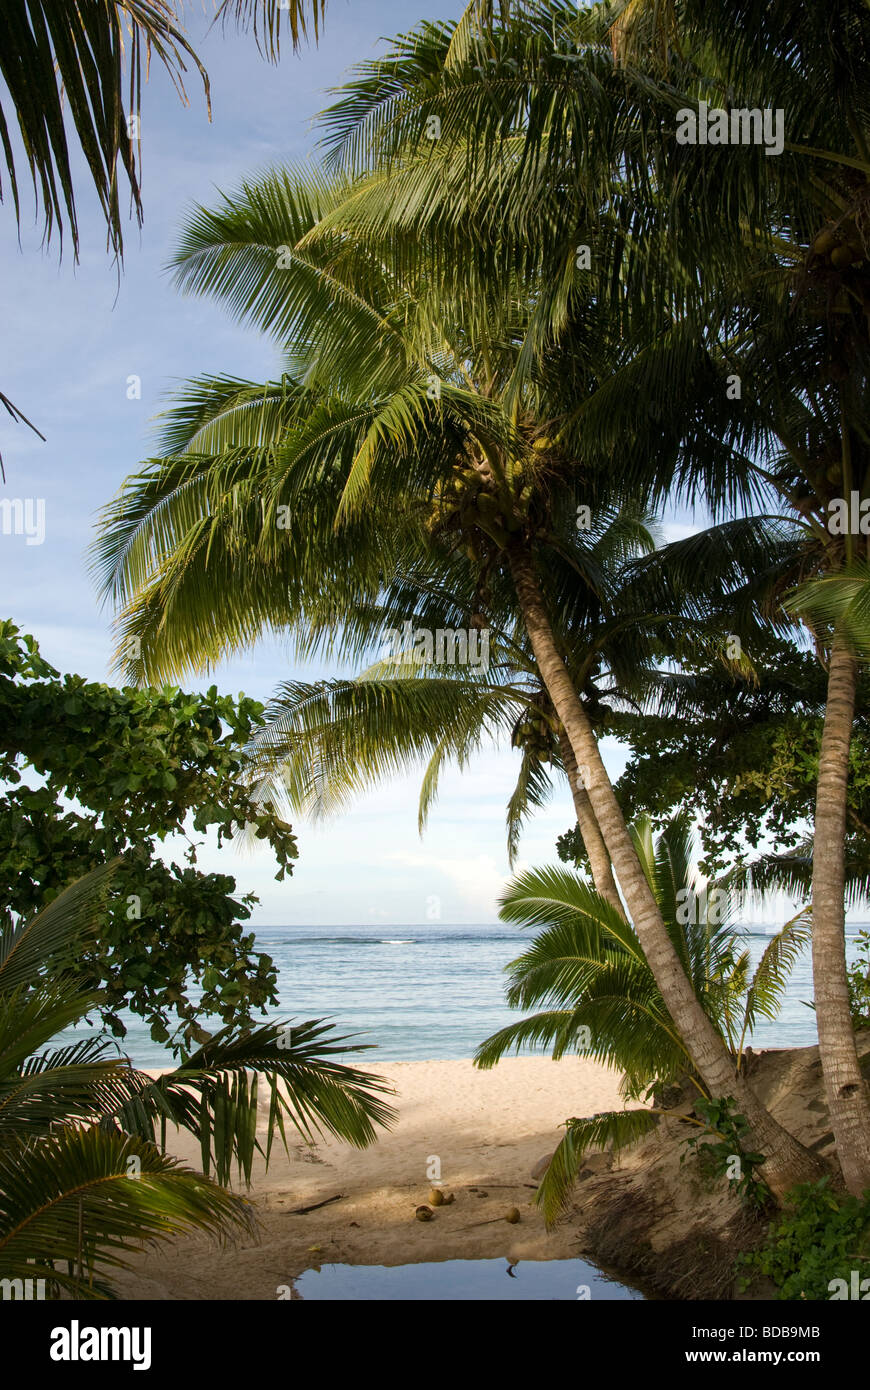 Coconut tree on beach, Manase, Savai'i Island, Western Samoa - Stock Image